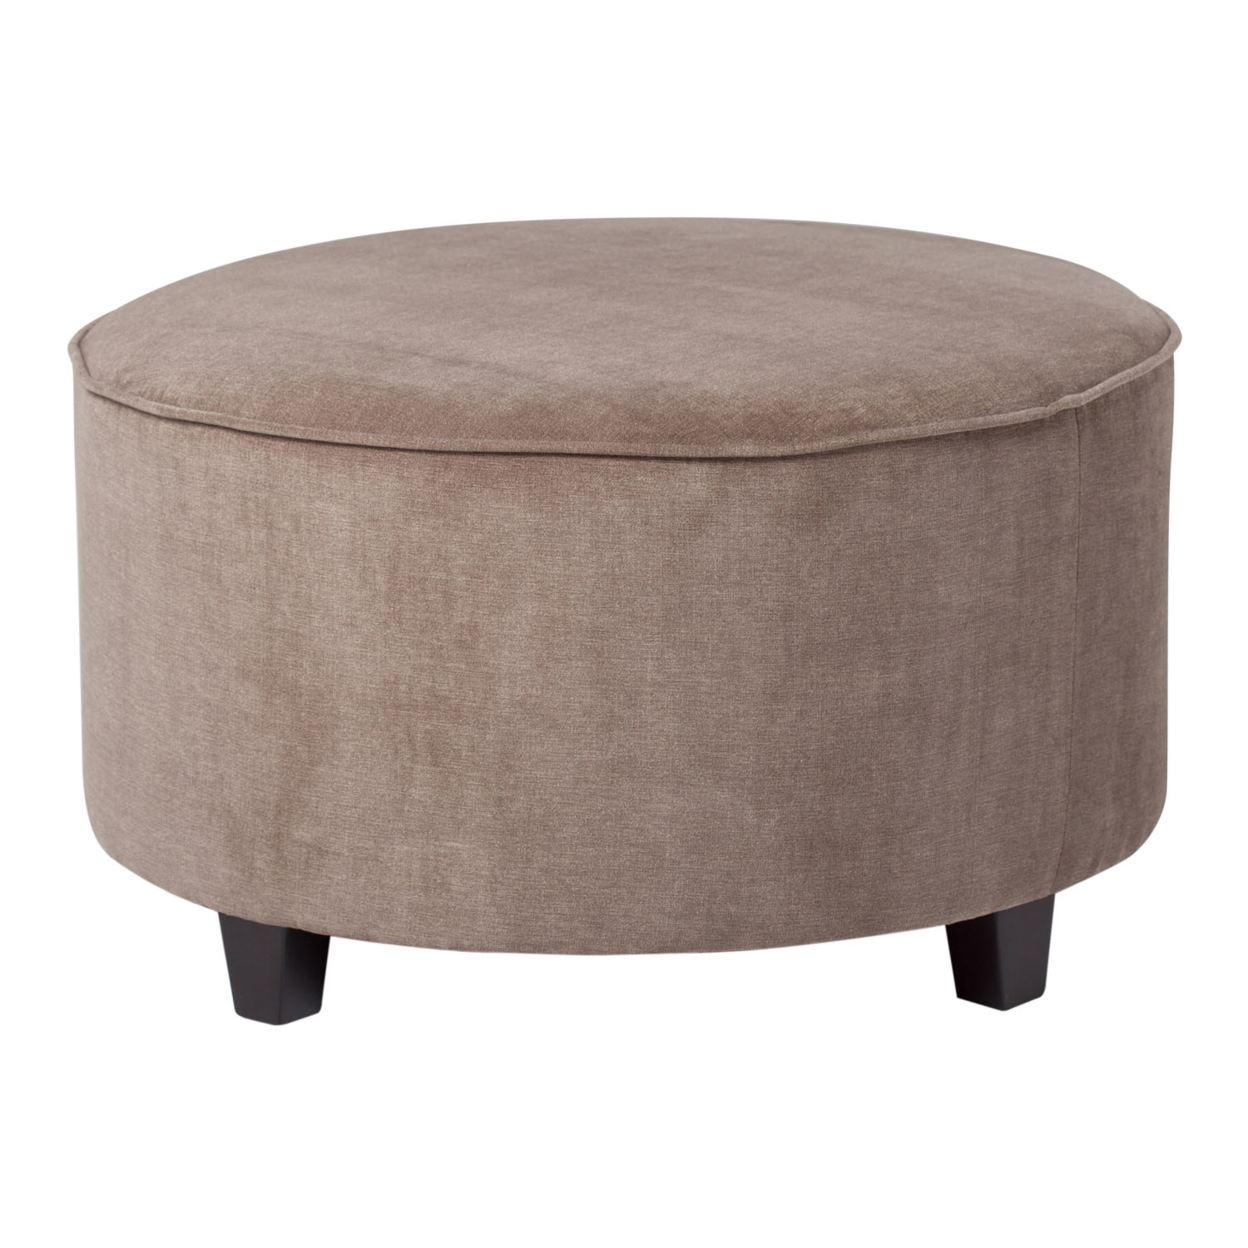 Studio Designs Home Office Moon Gate Ottoman – Warm Stone